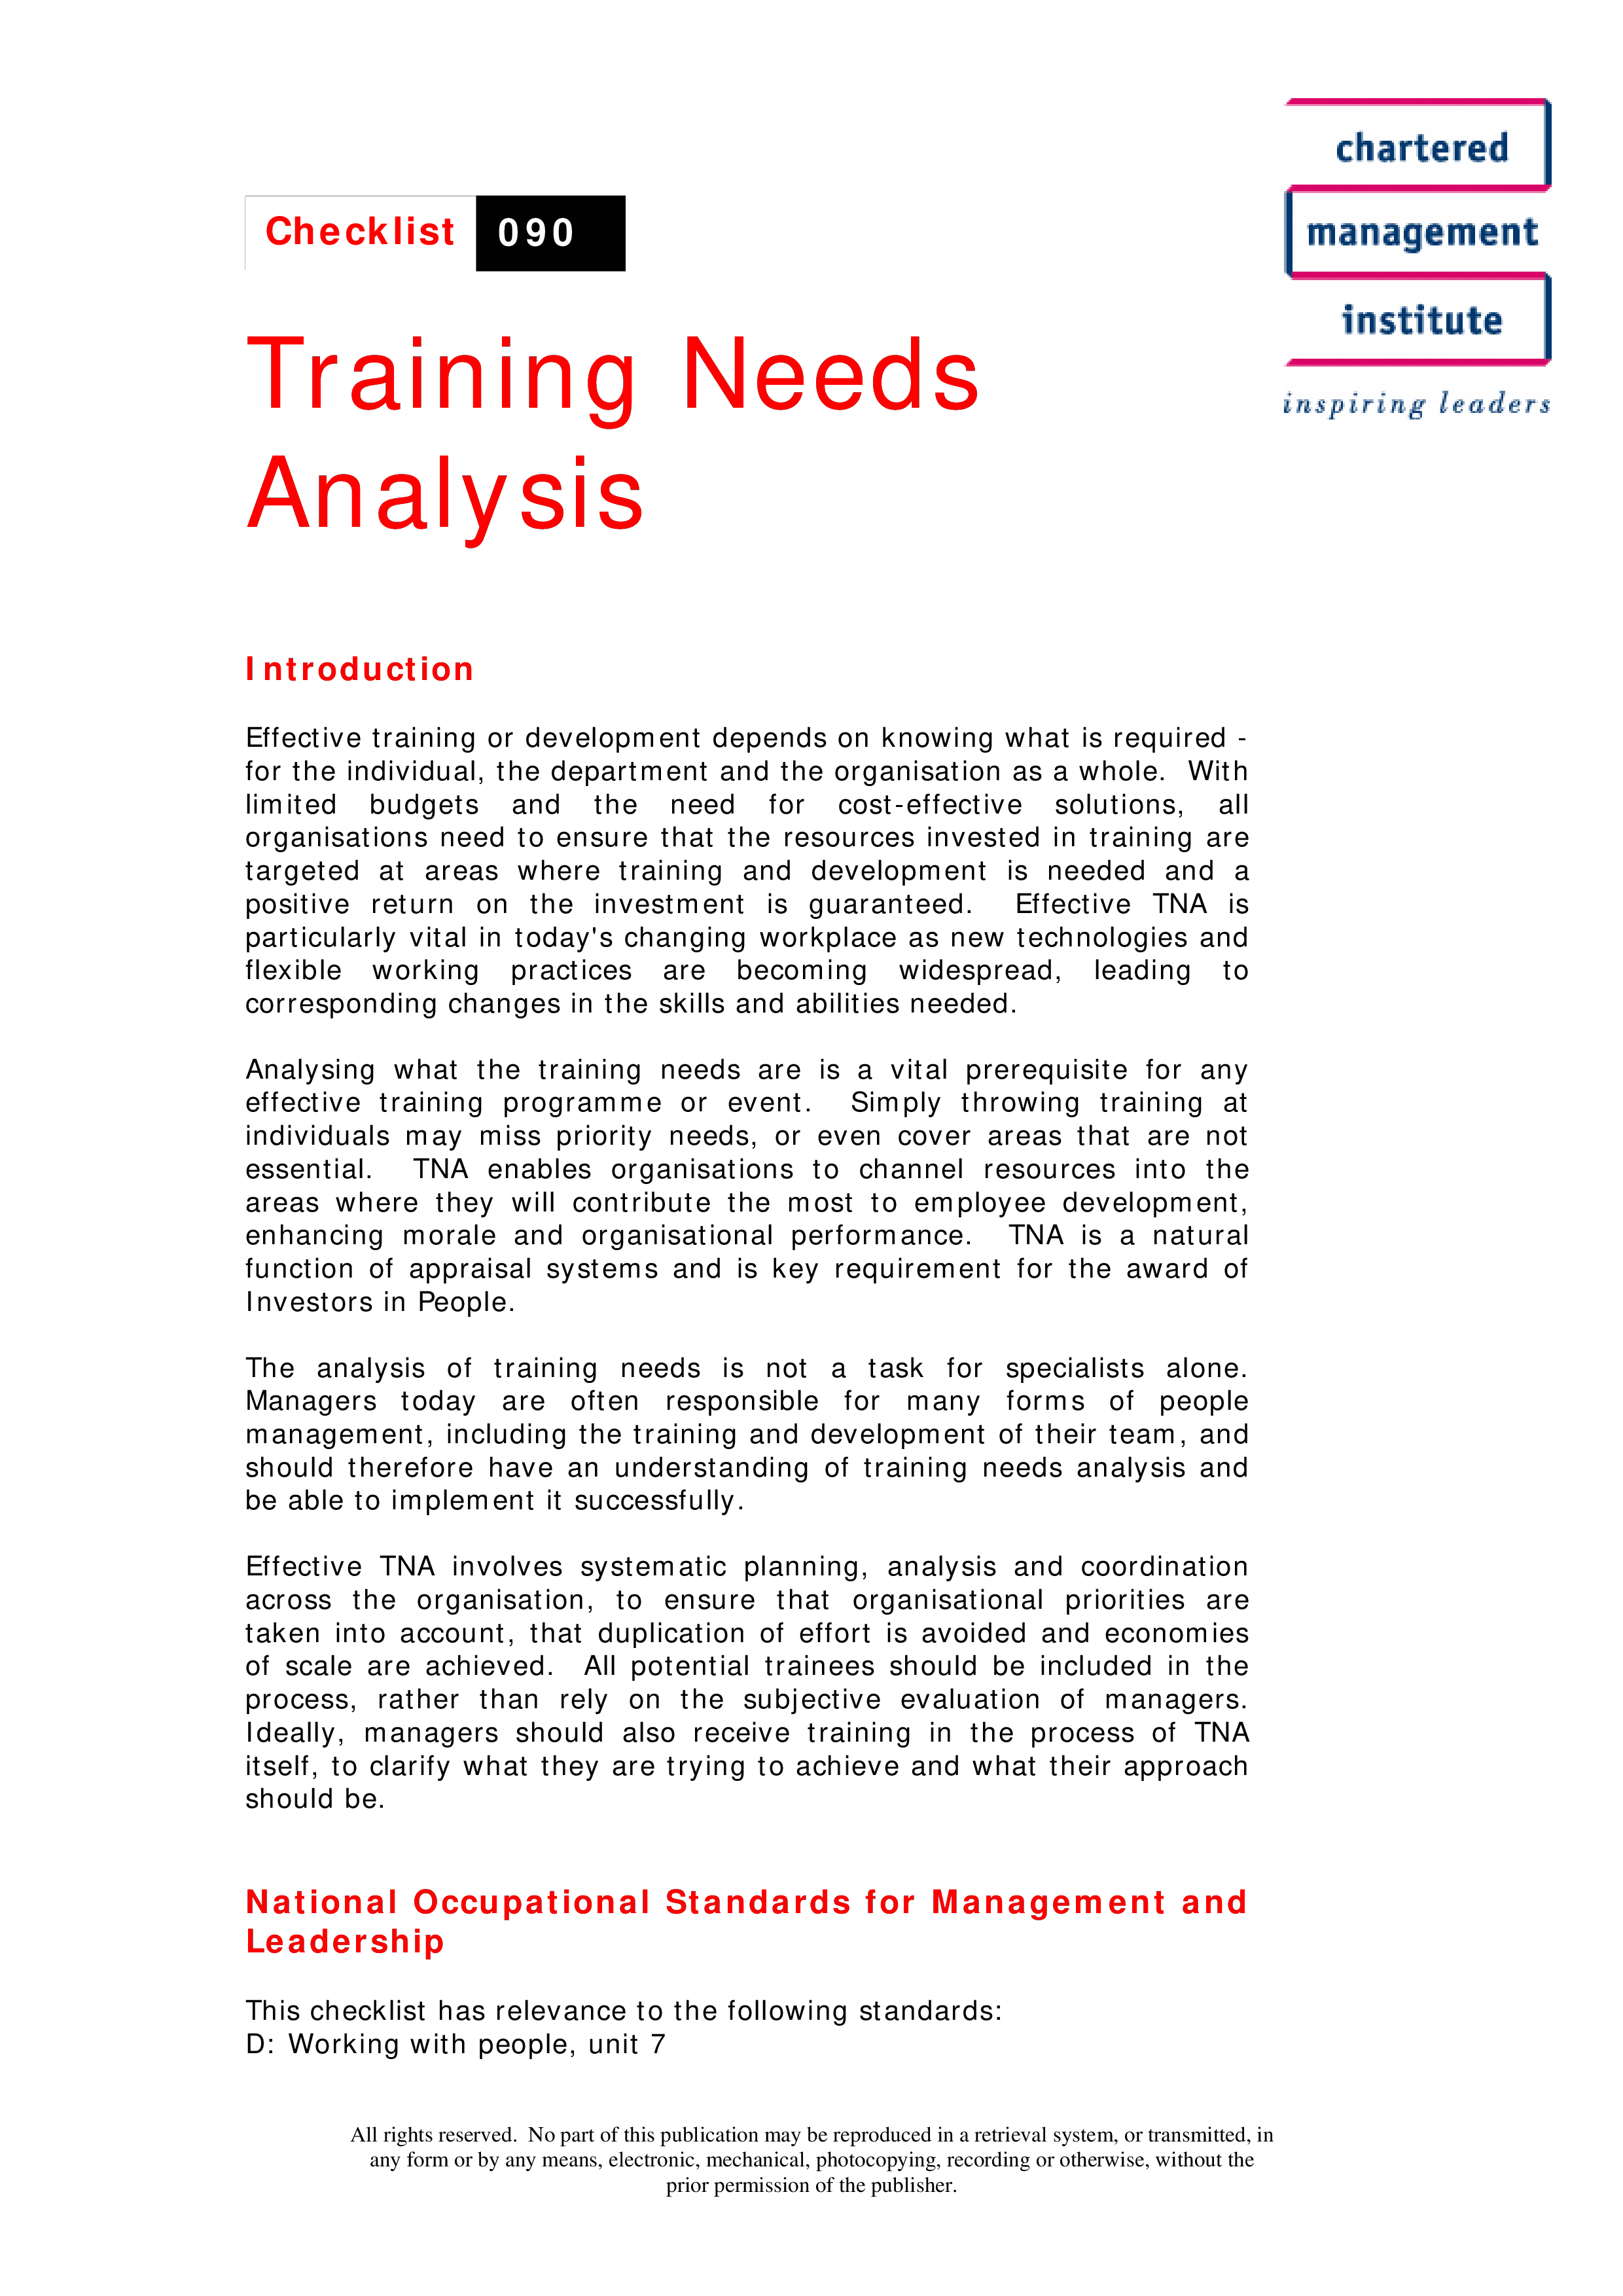 Training Needs Analysis Main Image Download Template